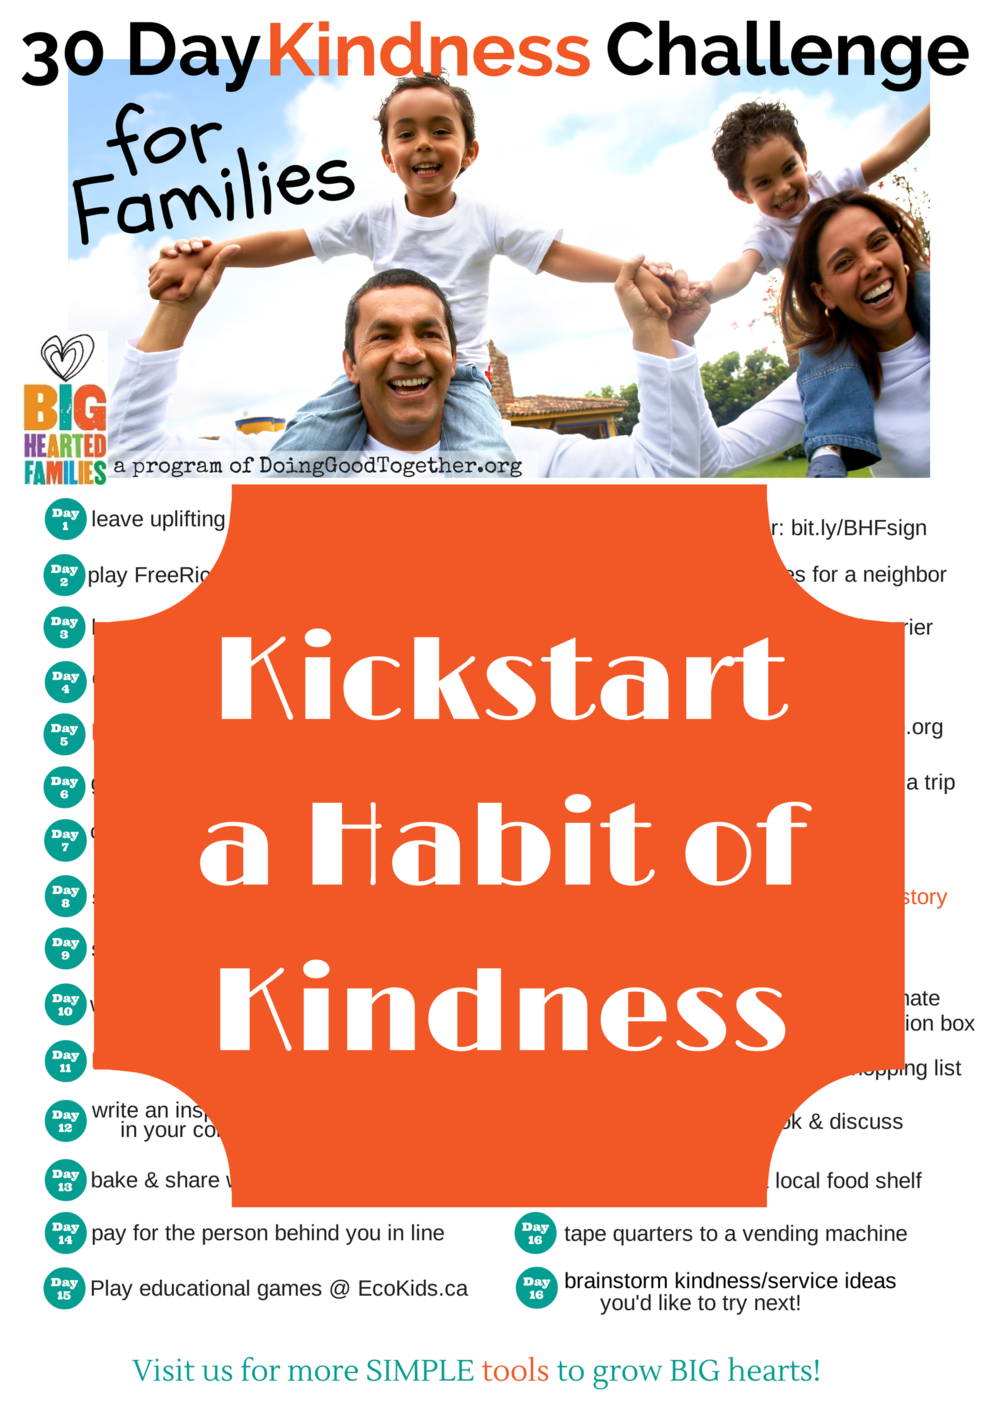 Take the #30Days Kindness Challenge from the Big-Hearted Families Program of DoingGoodTogether.org